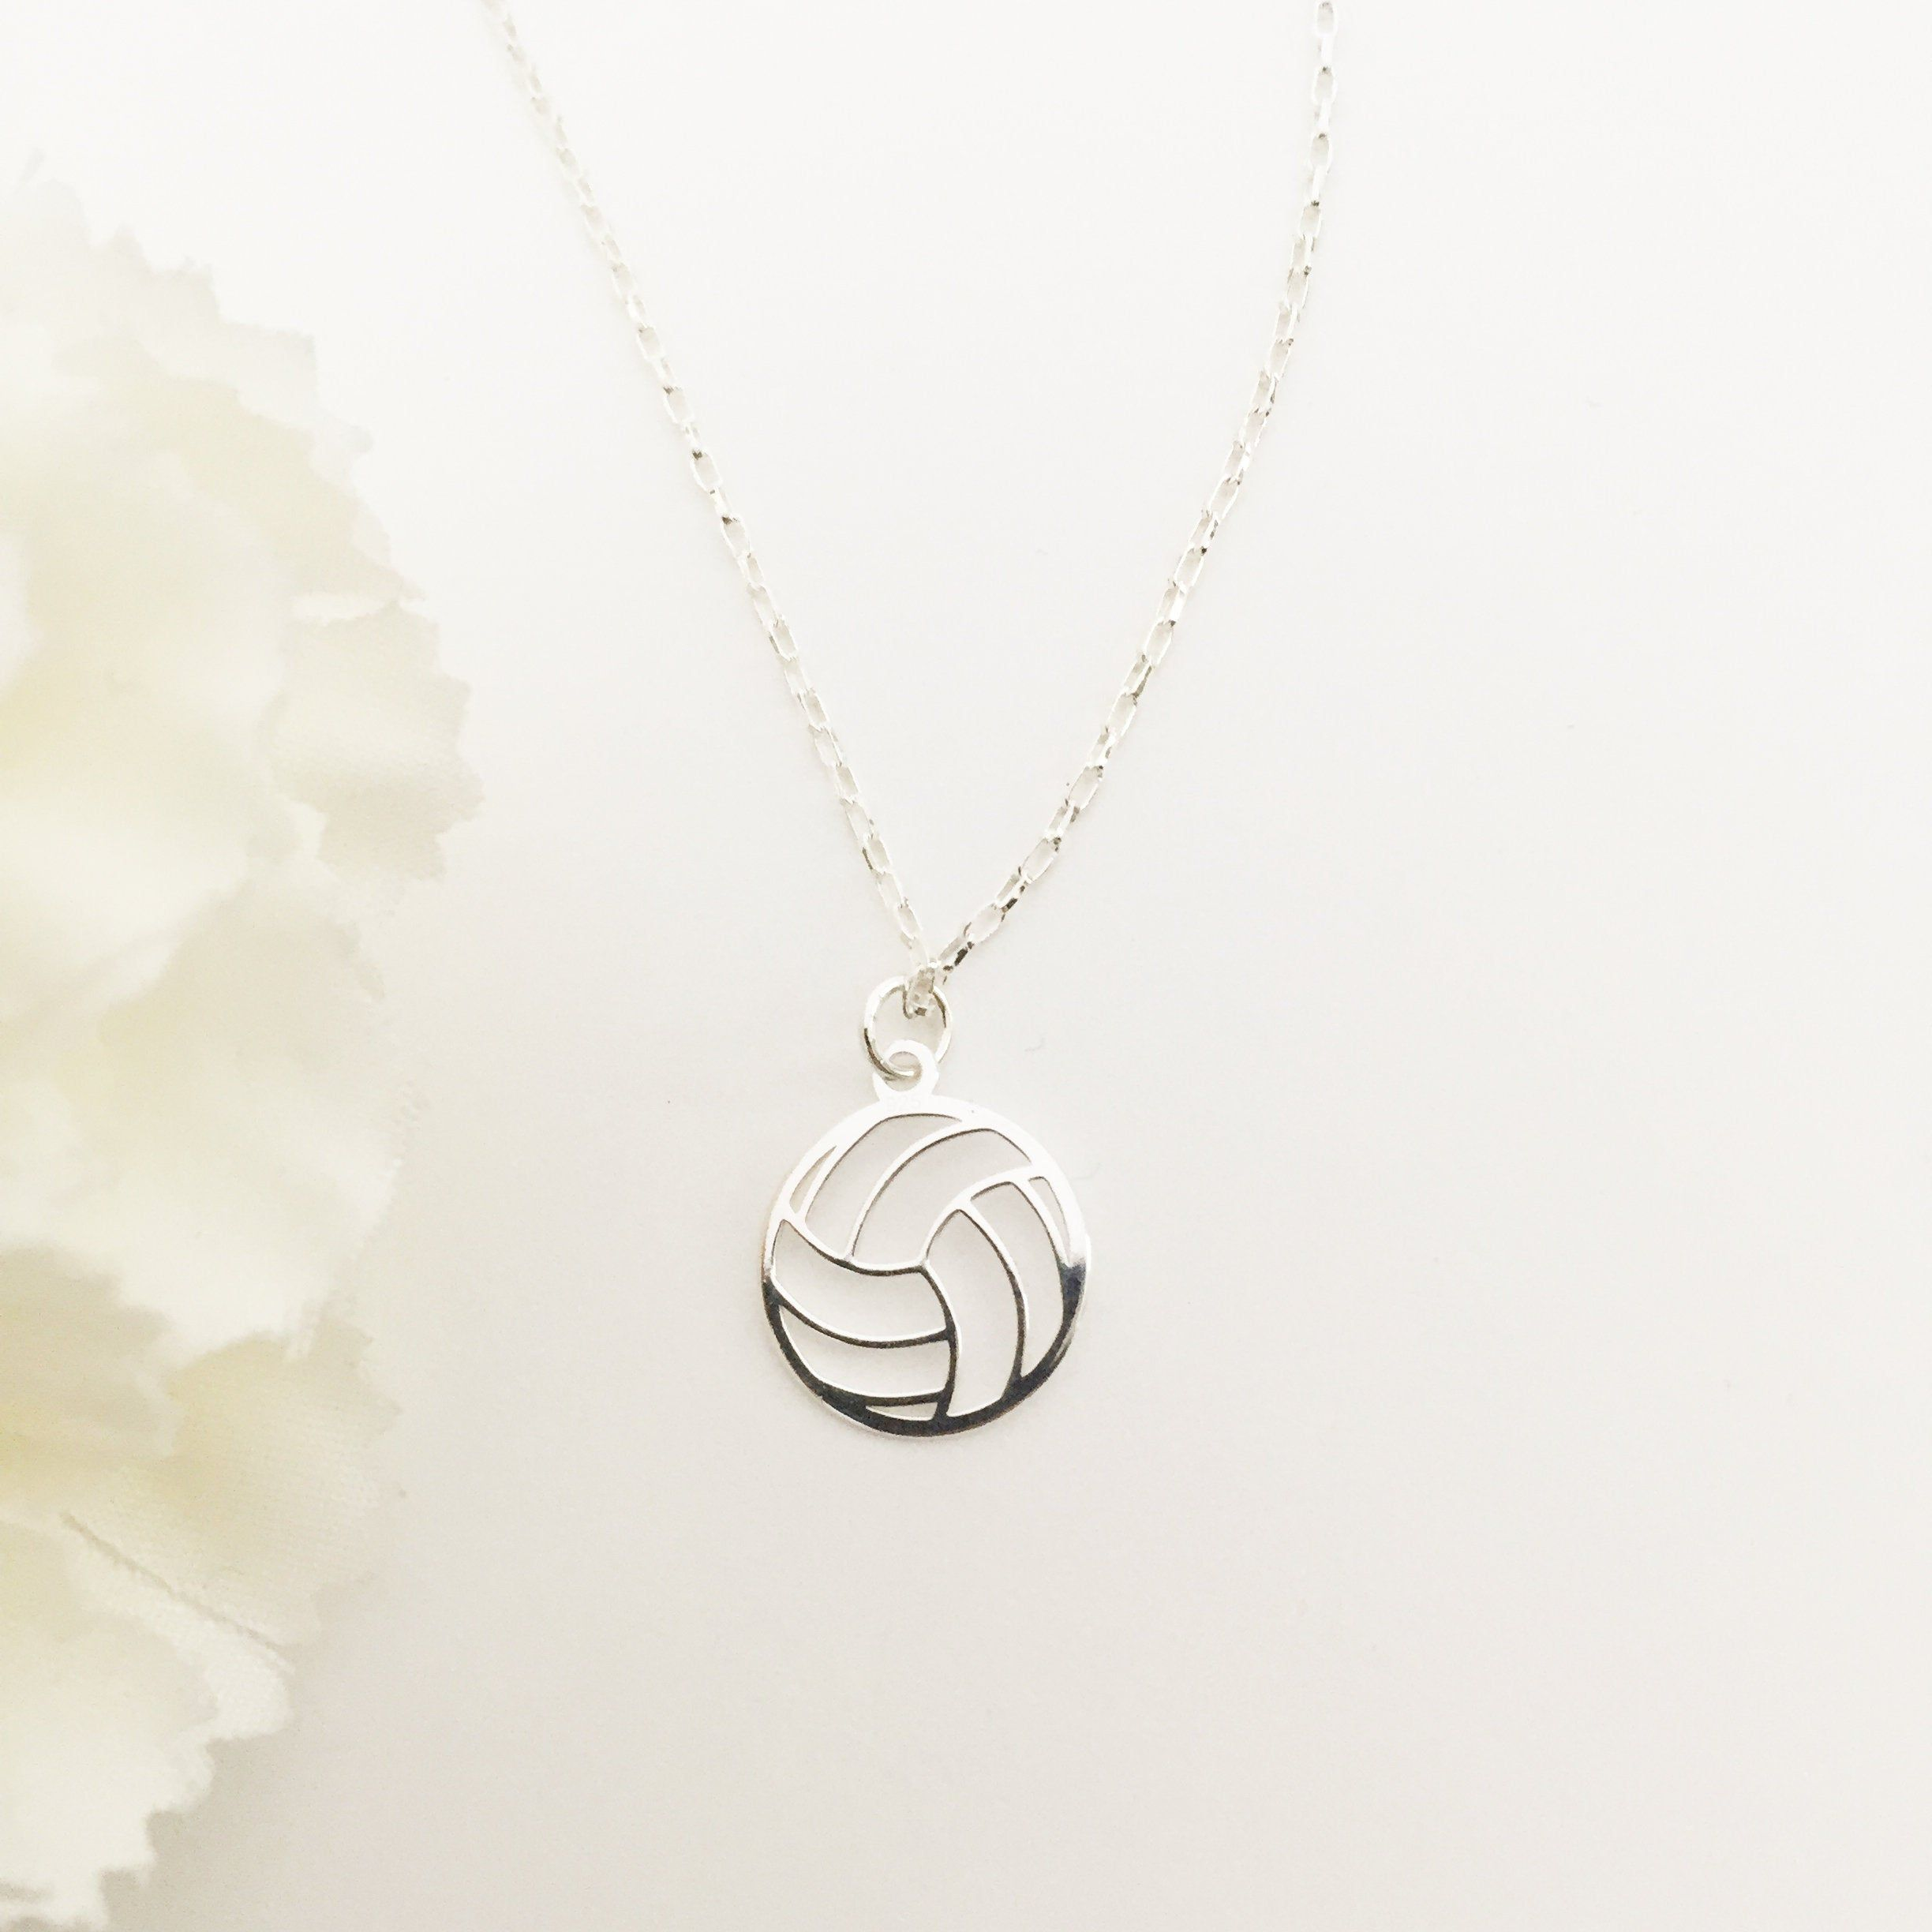 Silver Volleyball Necklace En 2020